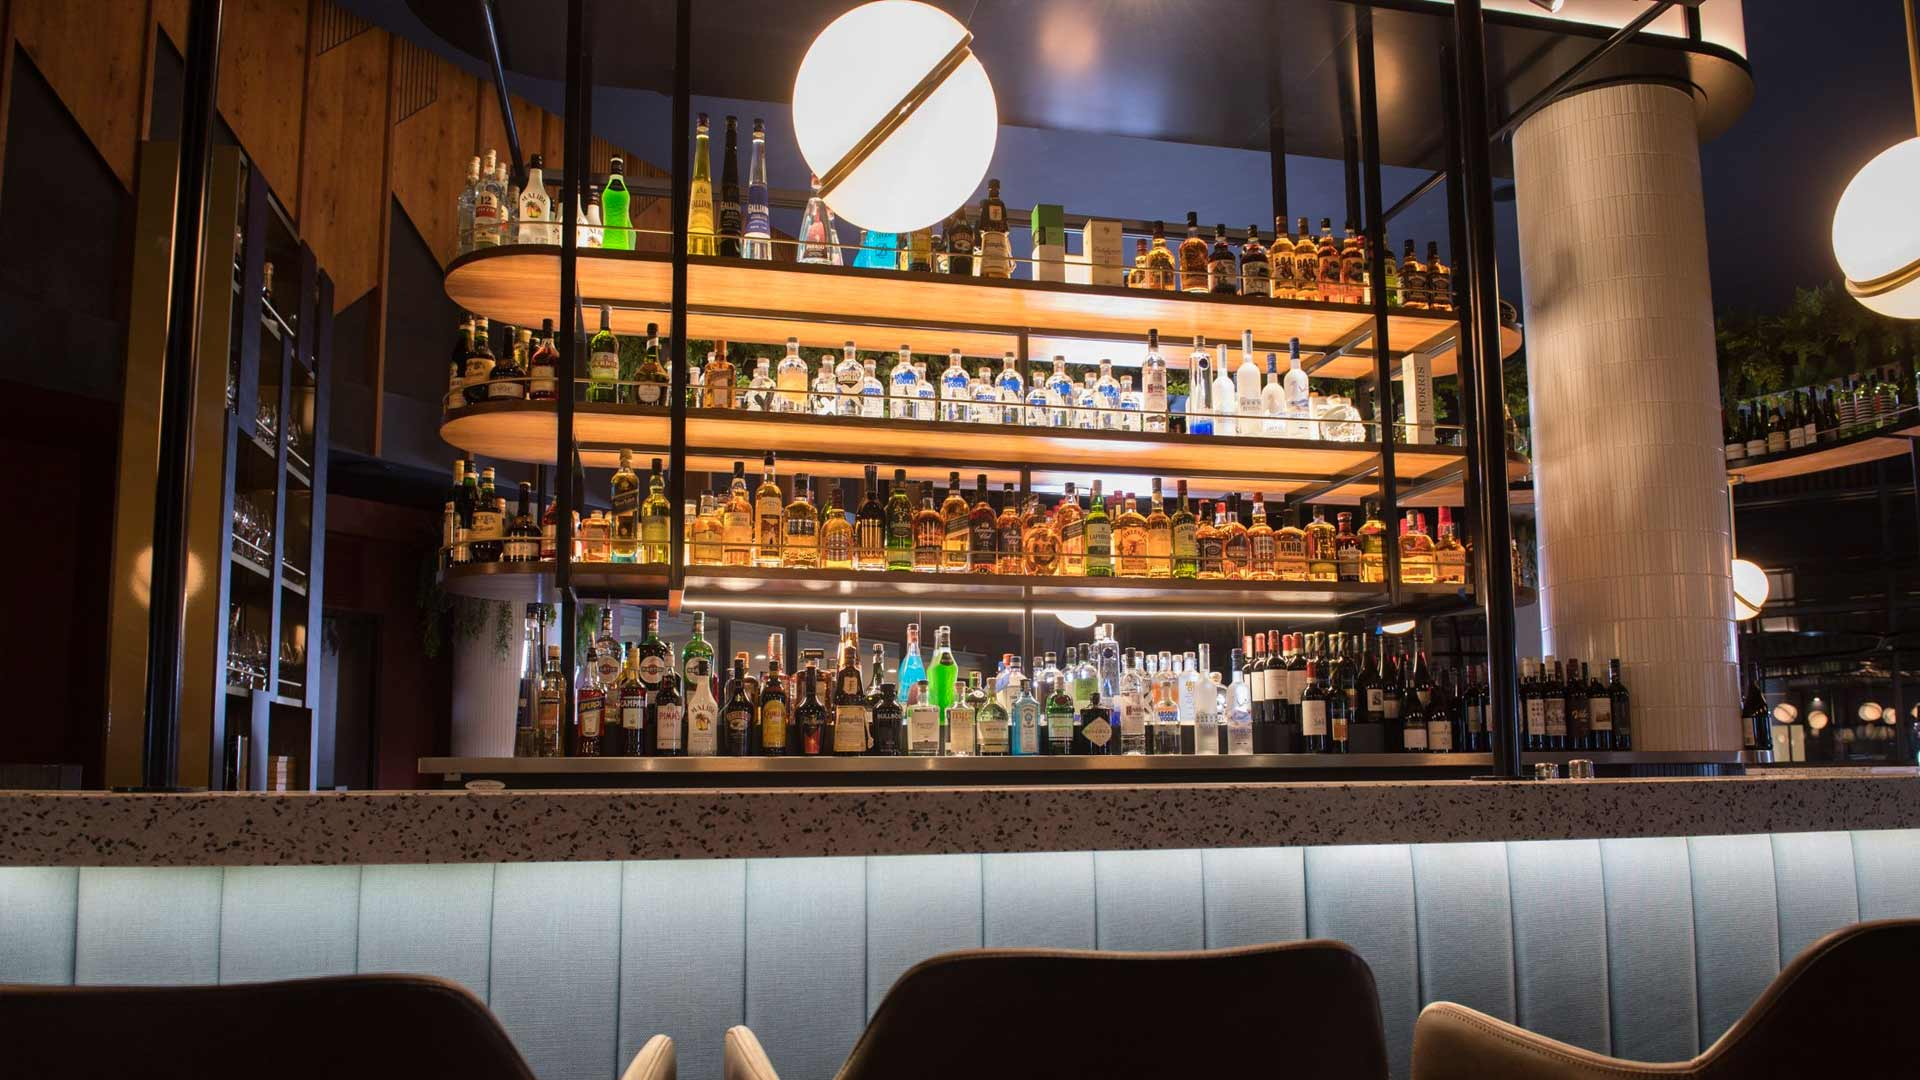 Cocktail bar in Moonee ponds